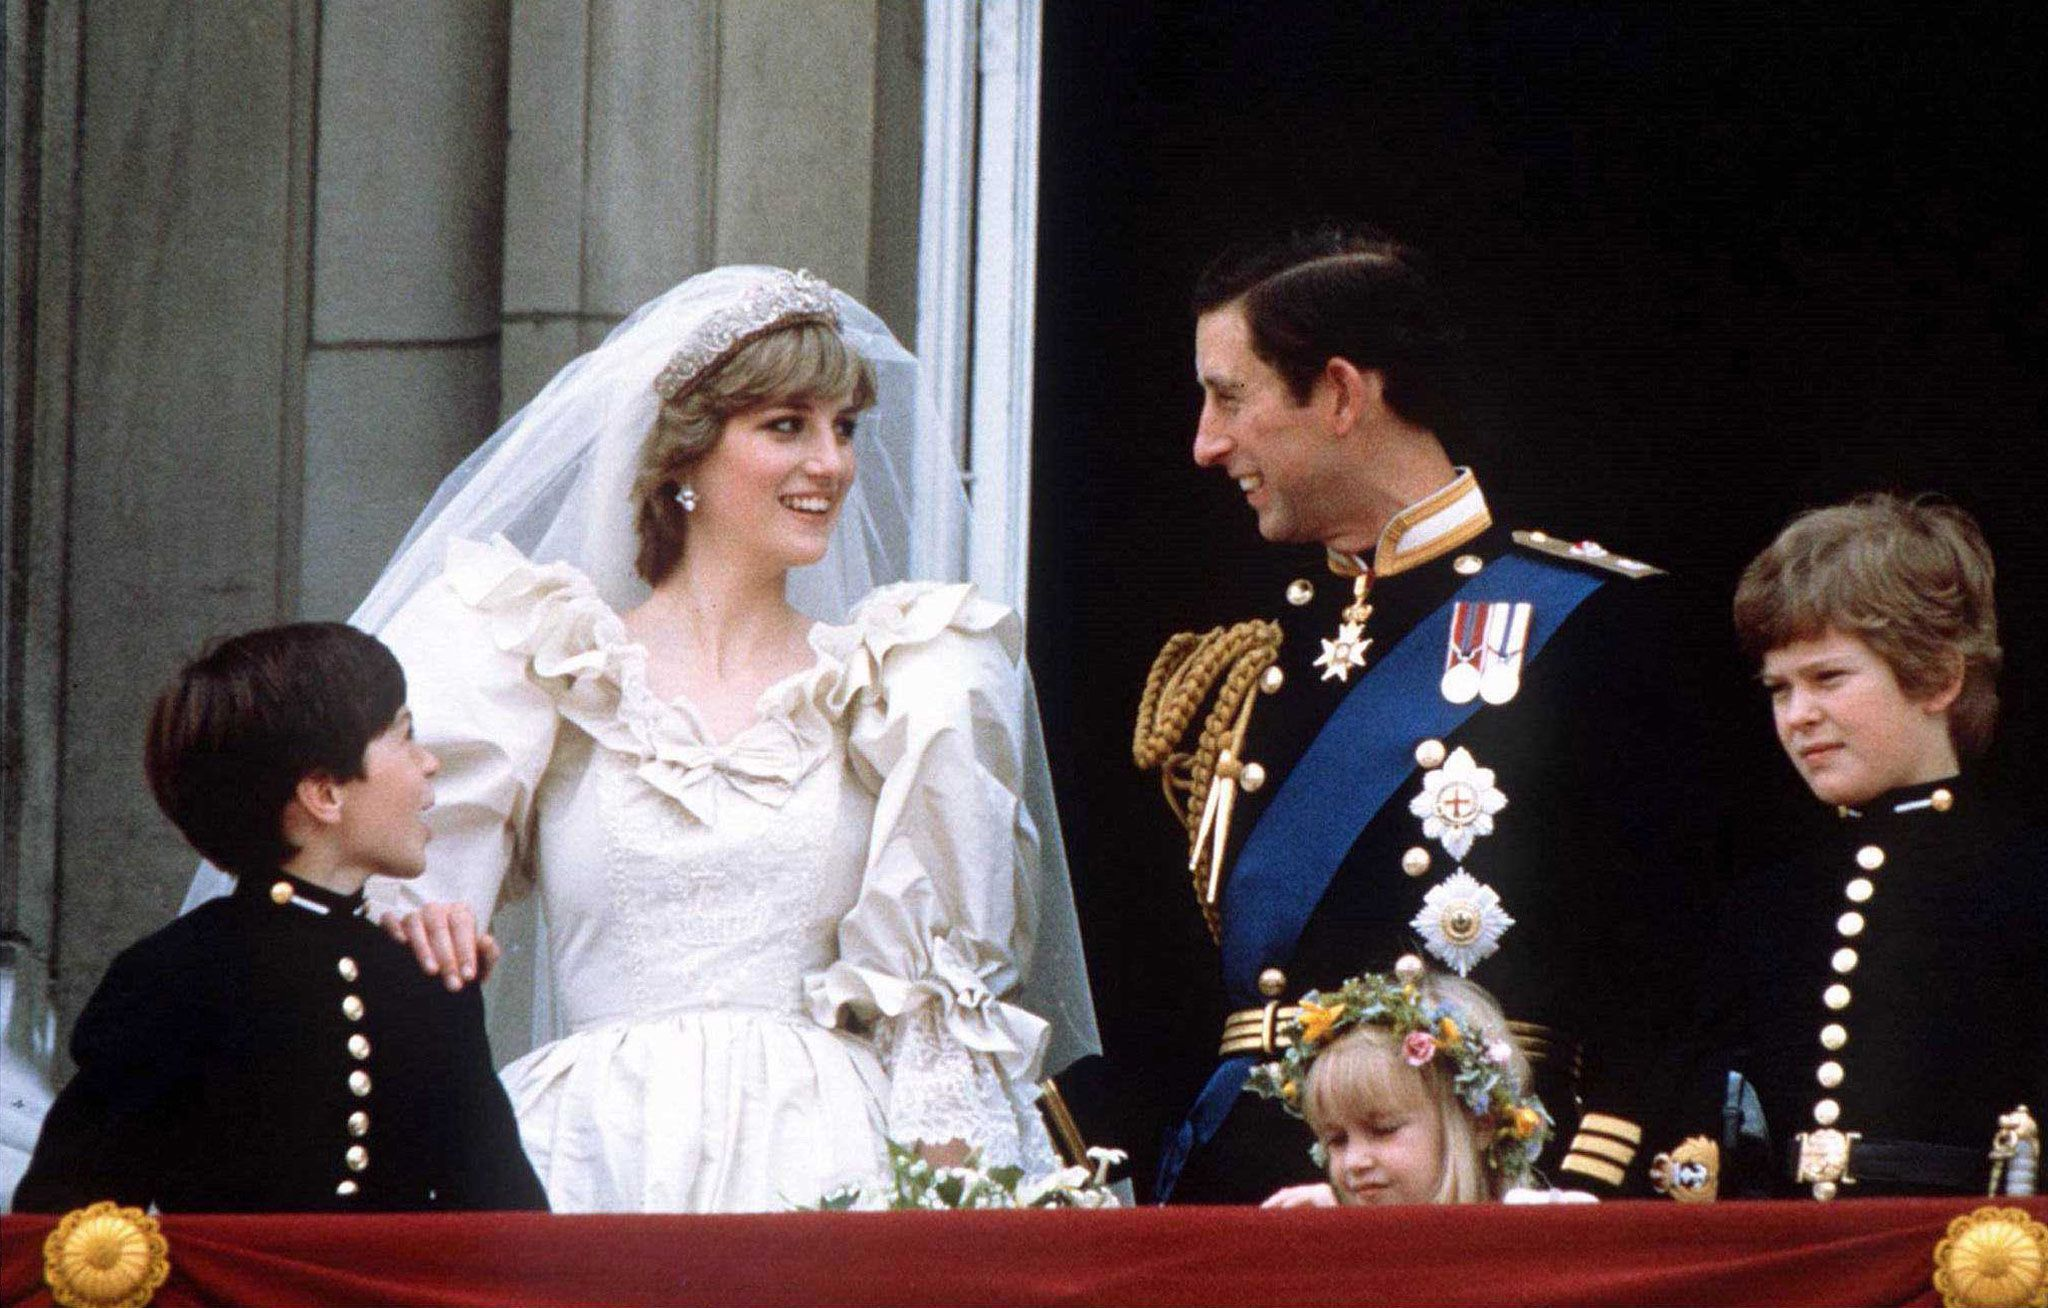 Royal Family Diana Princess of Wales Commemorated on Her 56th Birthday